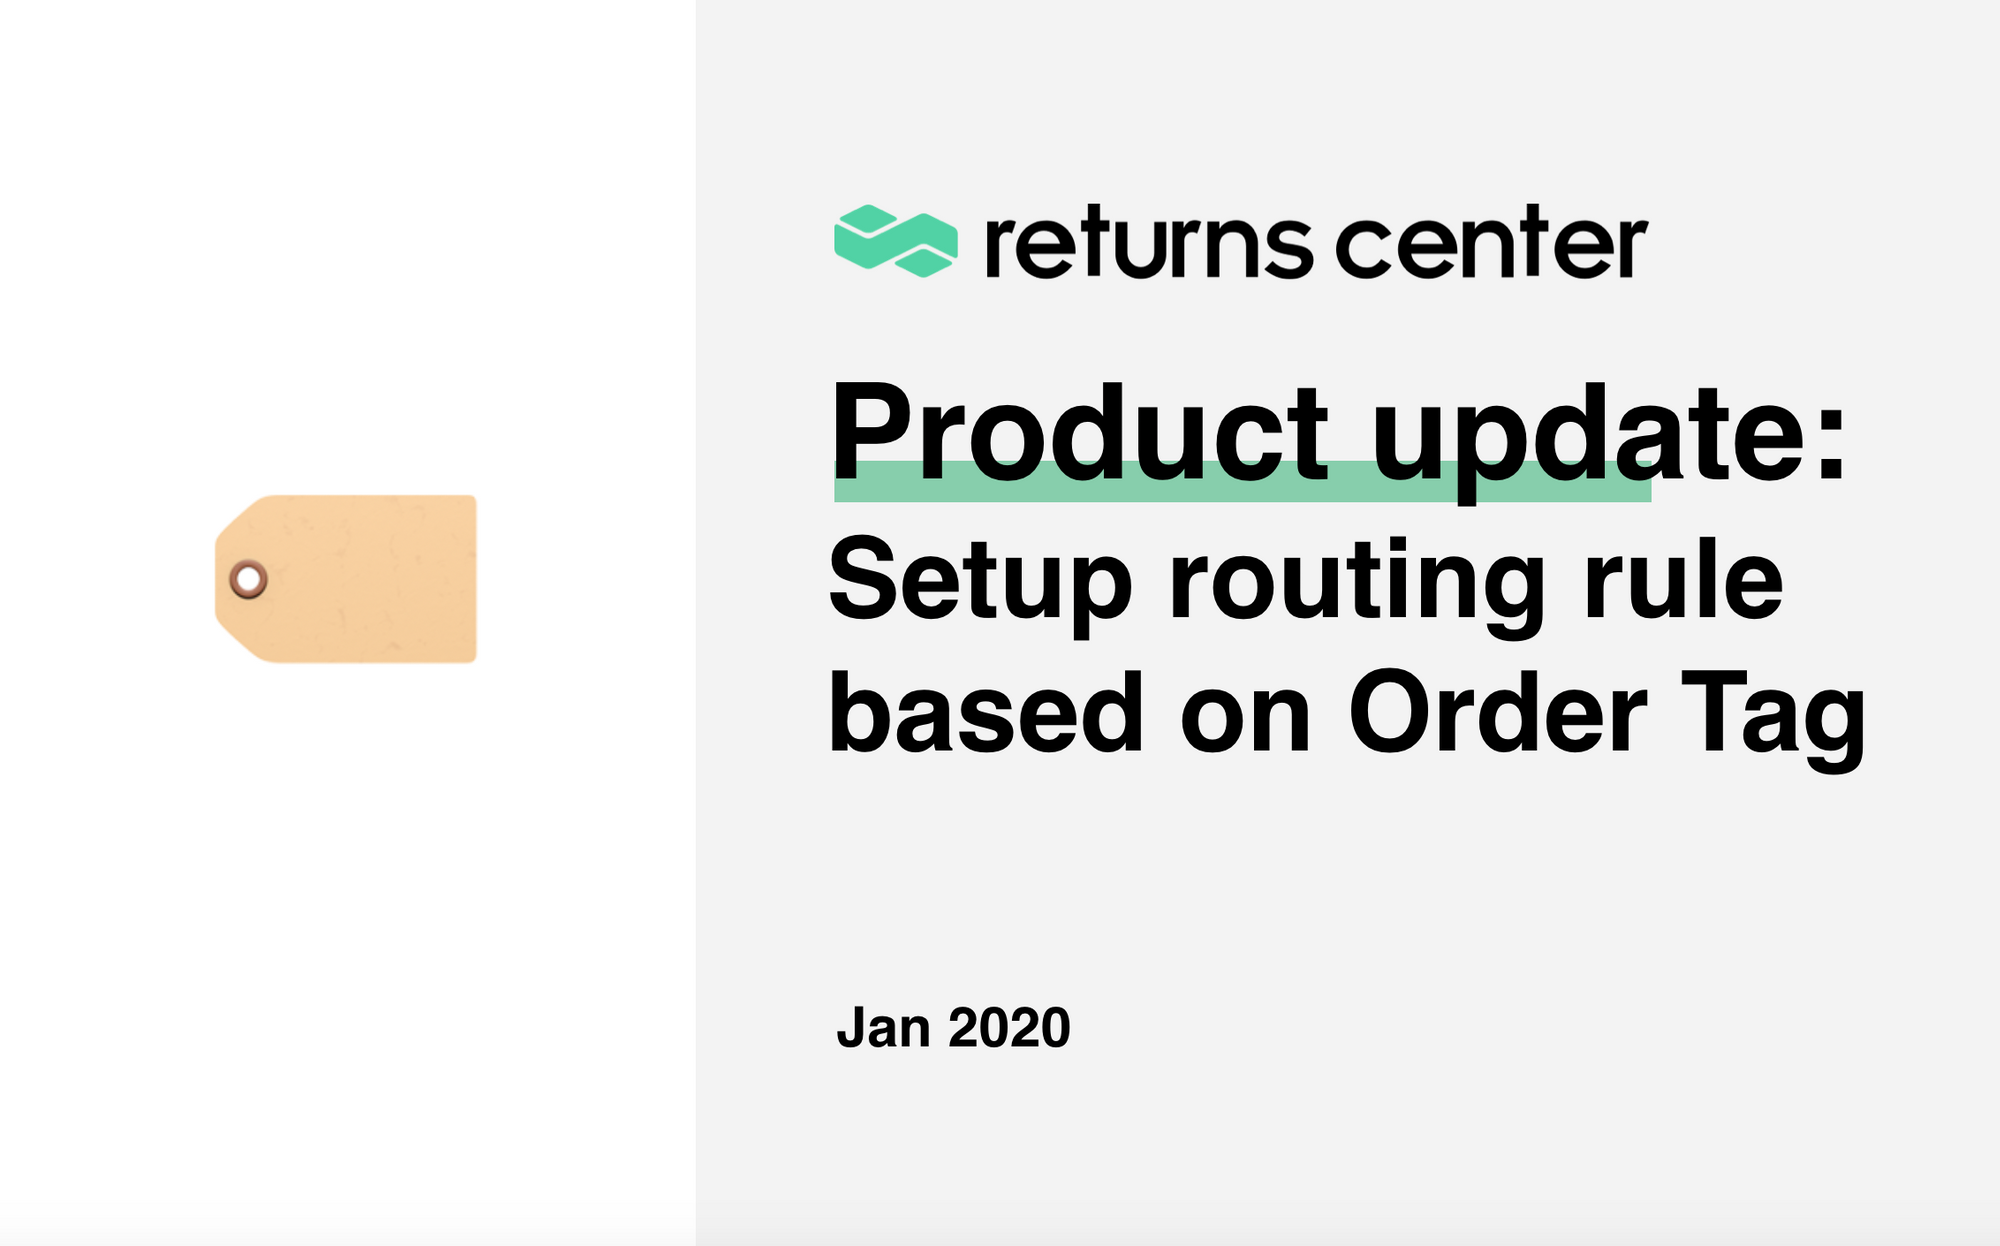 Product update: Setup routing rule based on order tag